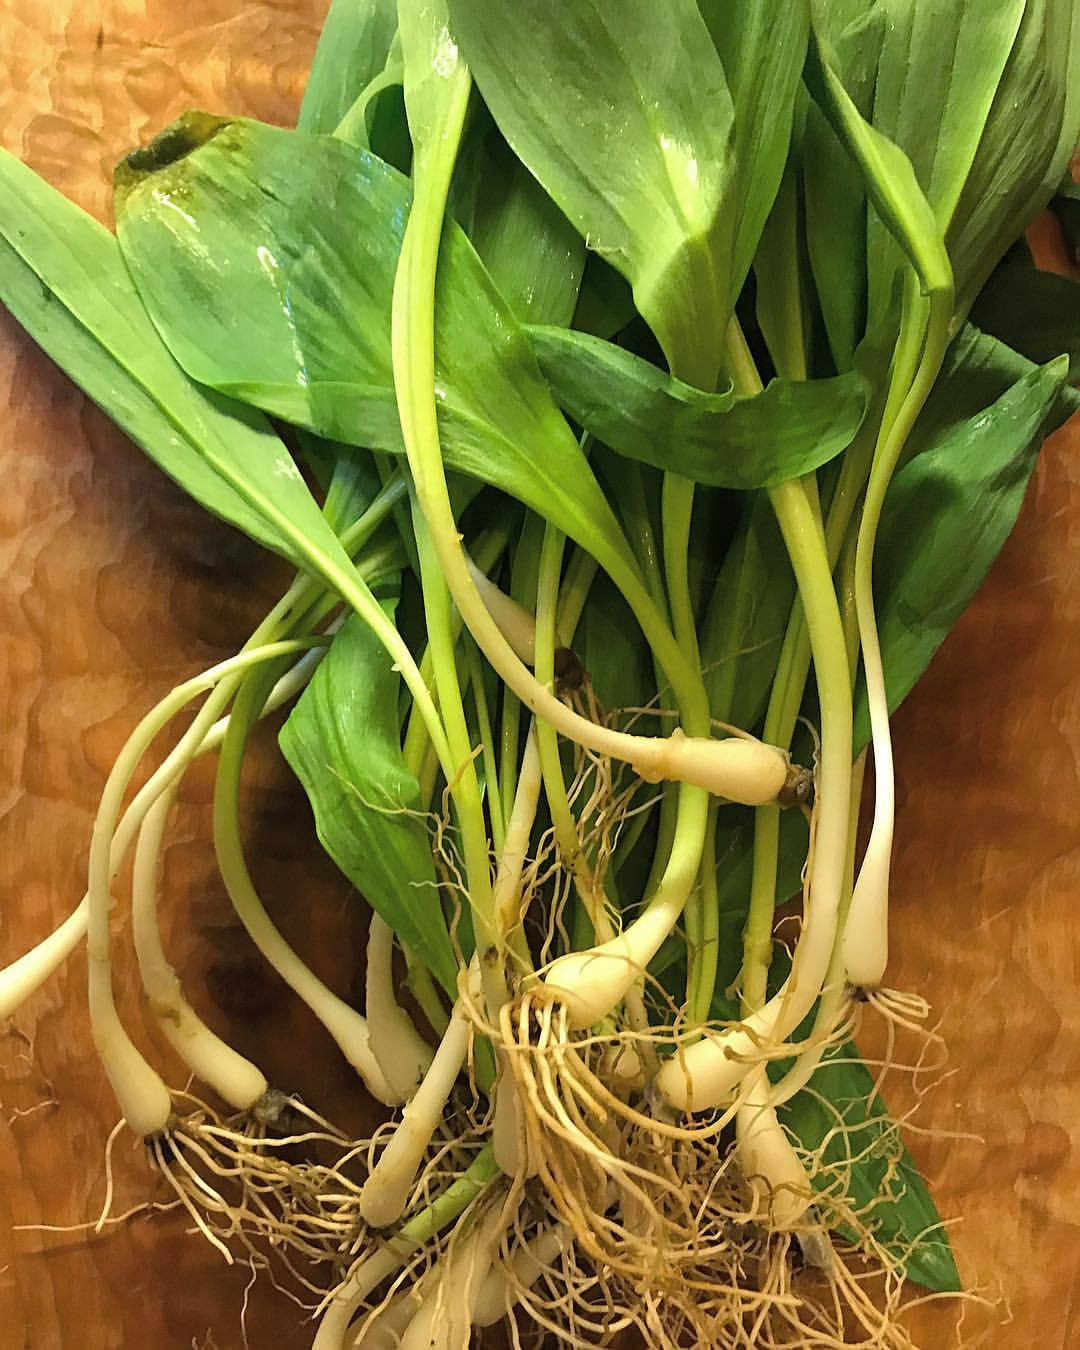 A long ago, secret admirer used to gift me bouquets of cleaned ramps in springtime.  -  #allium #ramps #spring #seductionbyonion (at At Home in Napa)